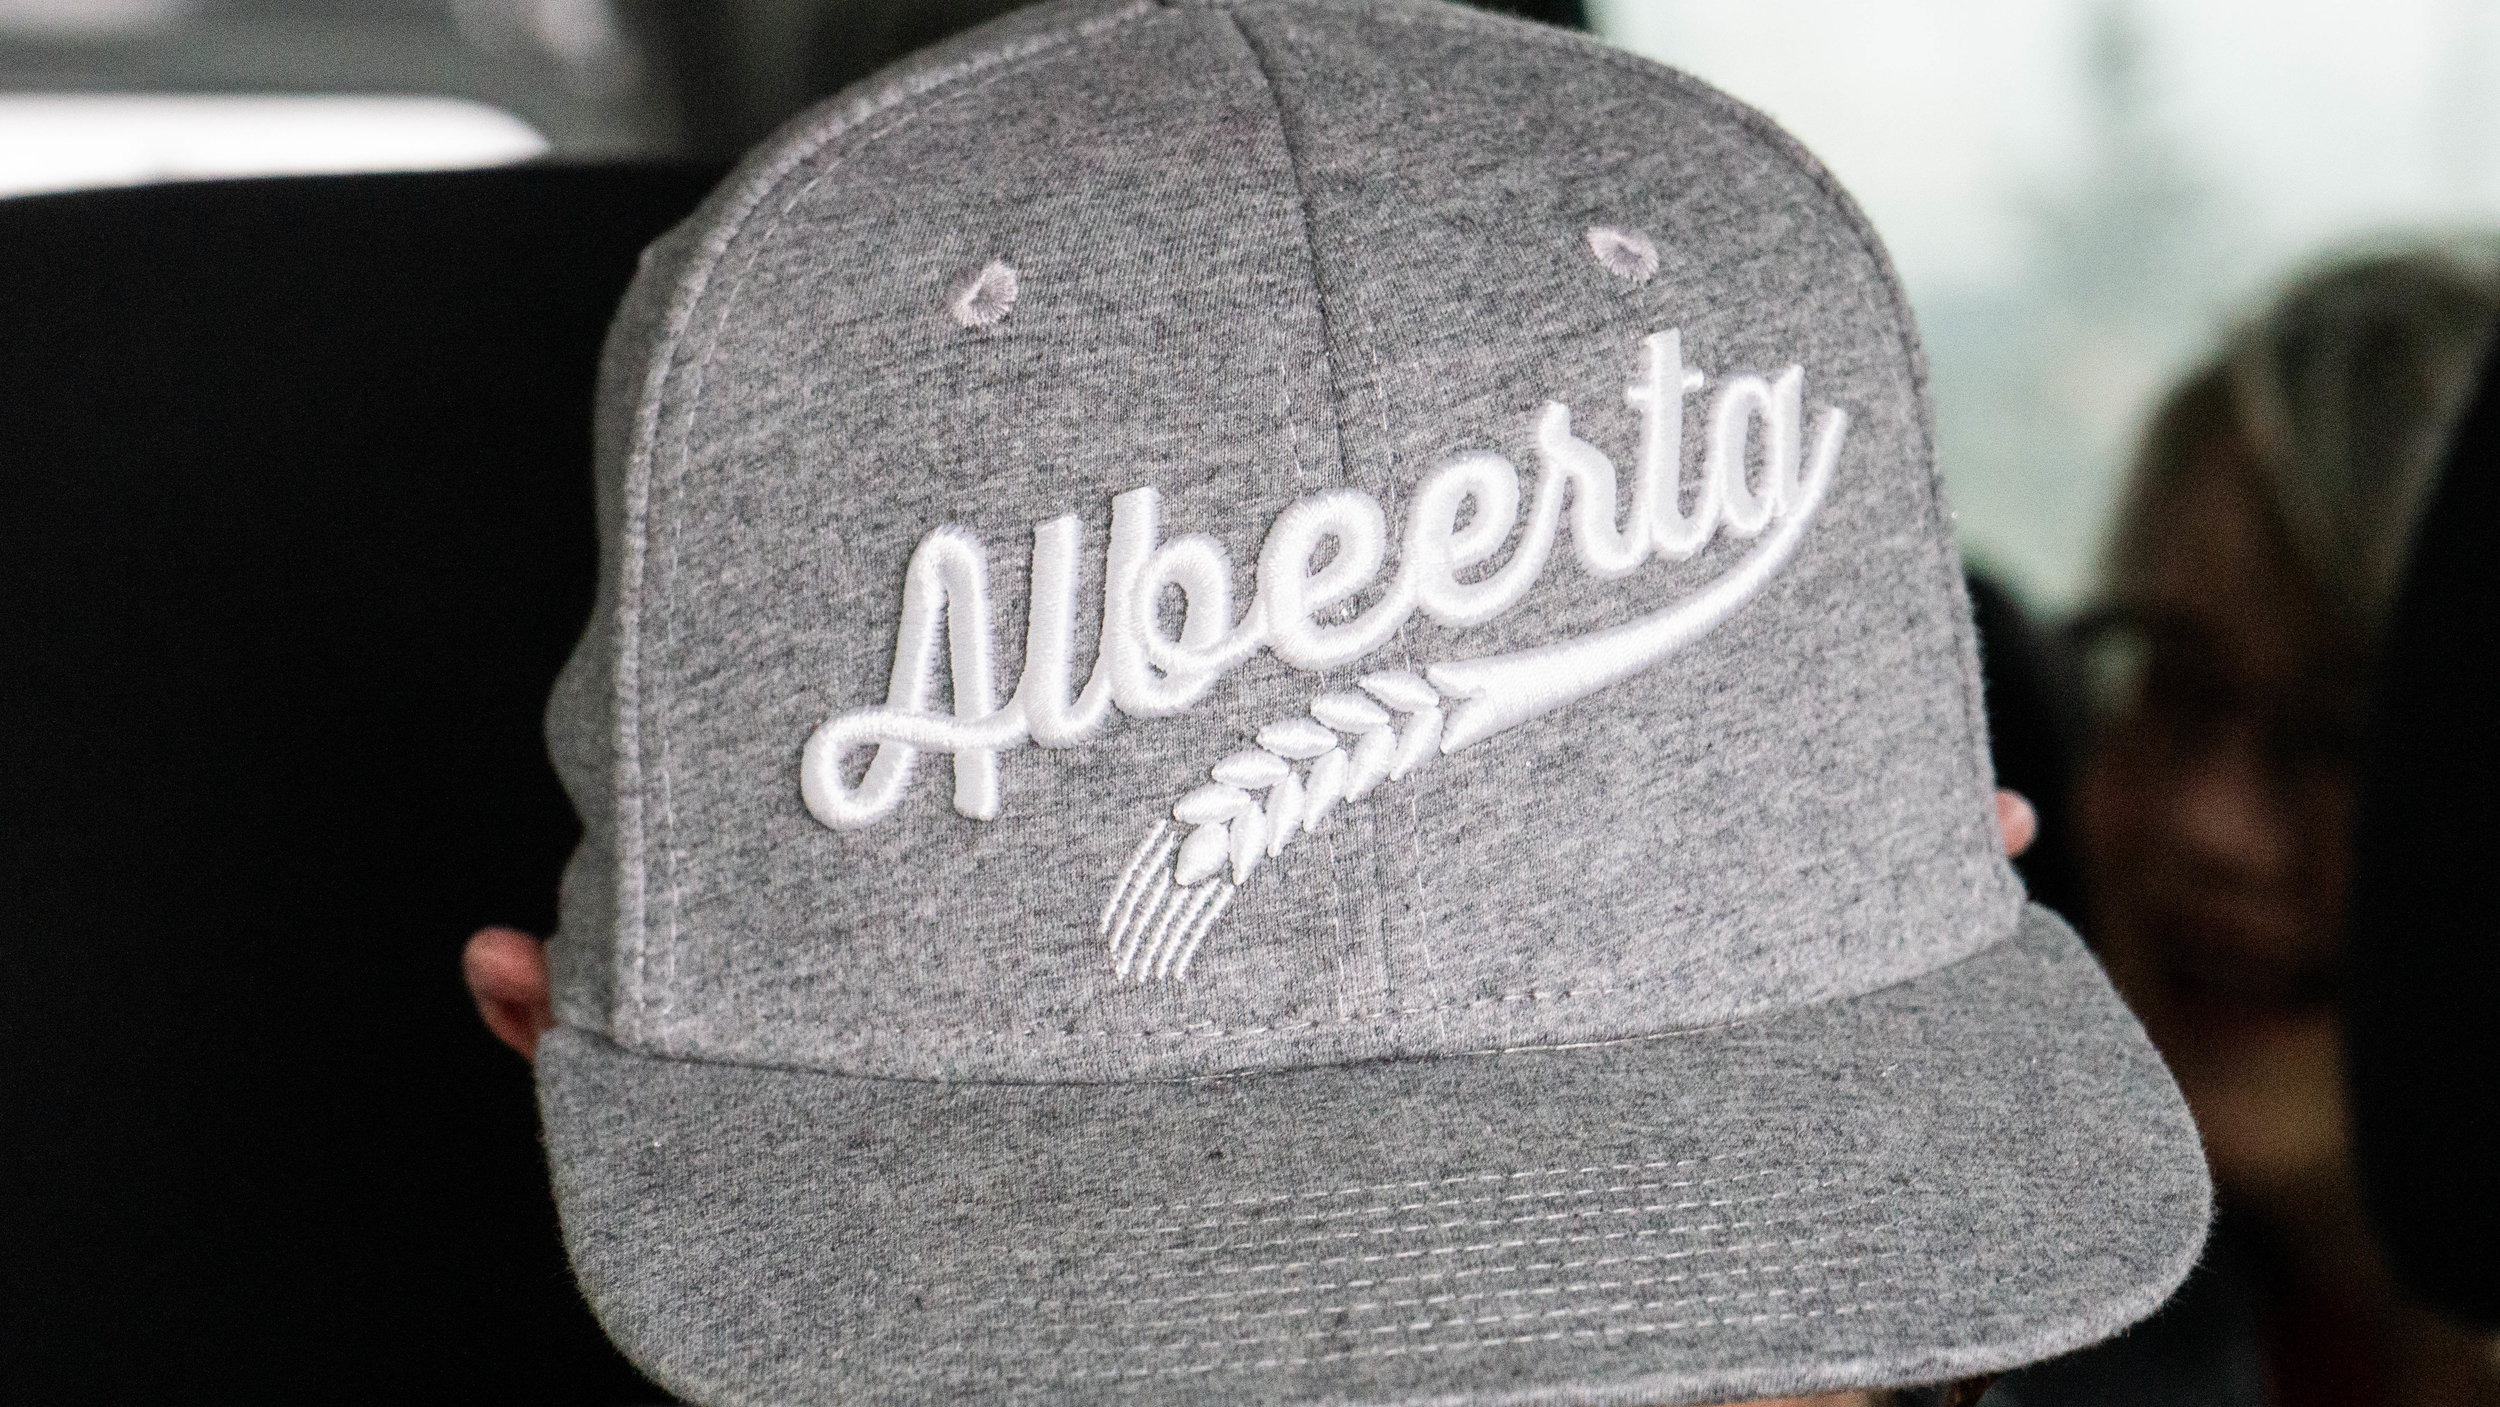 We love Albeerta, Aleberta, or whatever the heck you want to call this great province of ours! With so much to explore when it comes to craft beverages, we want to help you connect with all the good stuff!